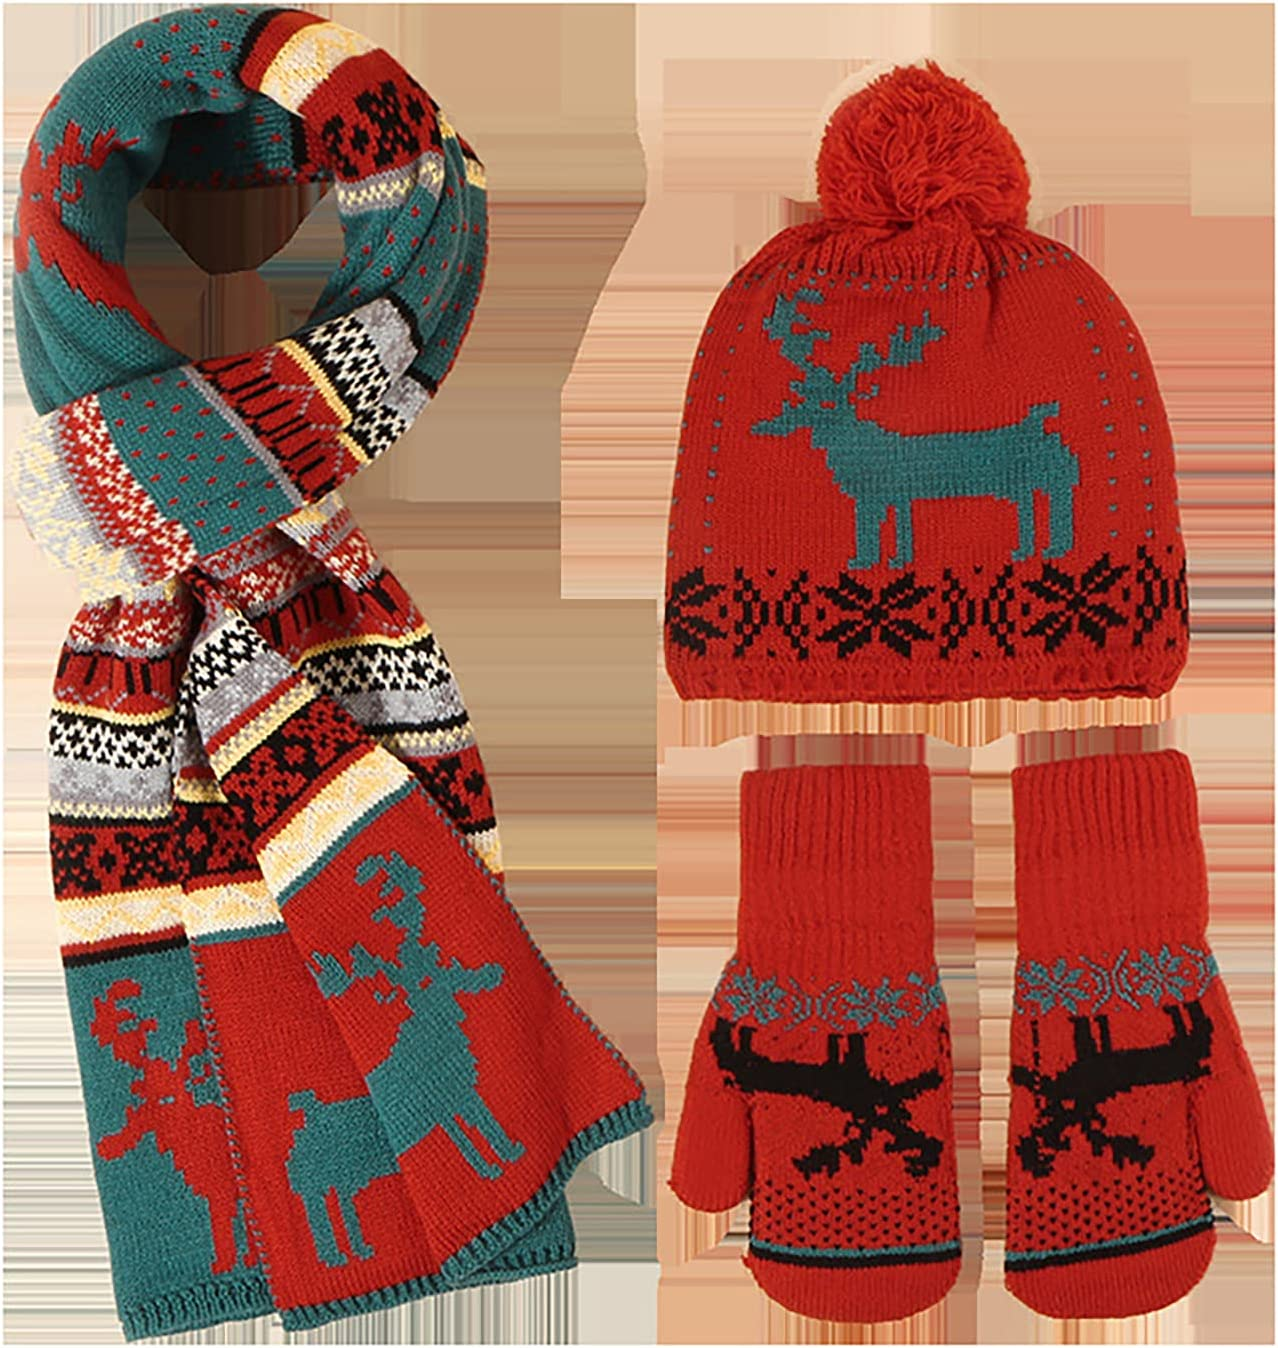 Camidy 3pcs Winter Knit Hat Scarf Gloves Set for Women, Christmas Elk Pattern Knitted Mitten Scarf Ear Protection Cap Womens Winter Warmer Set